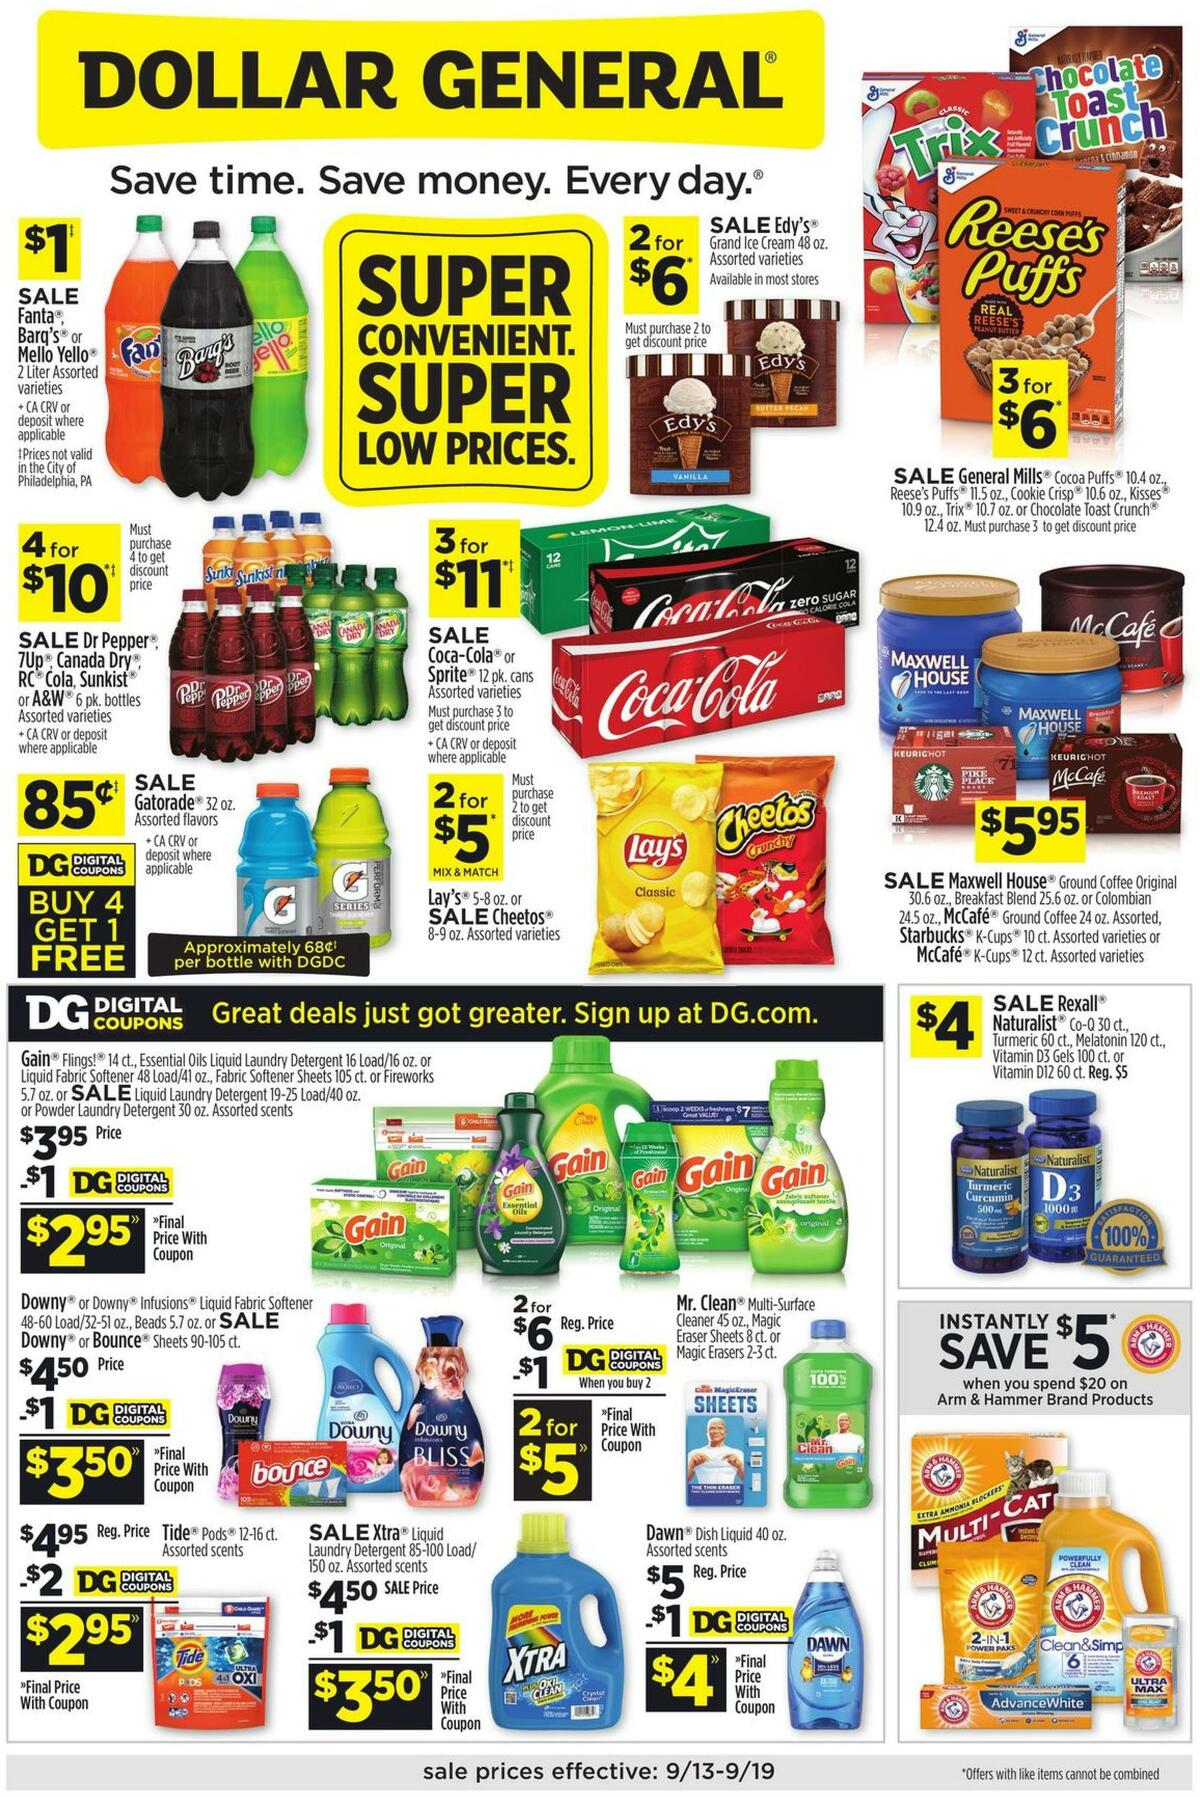 Dollar General Weekly Ad from September 13